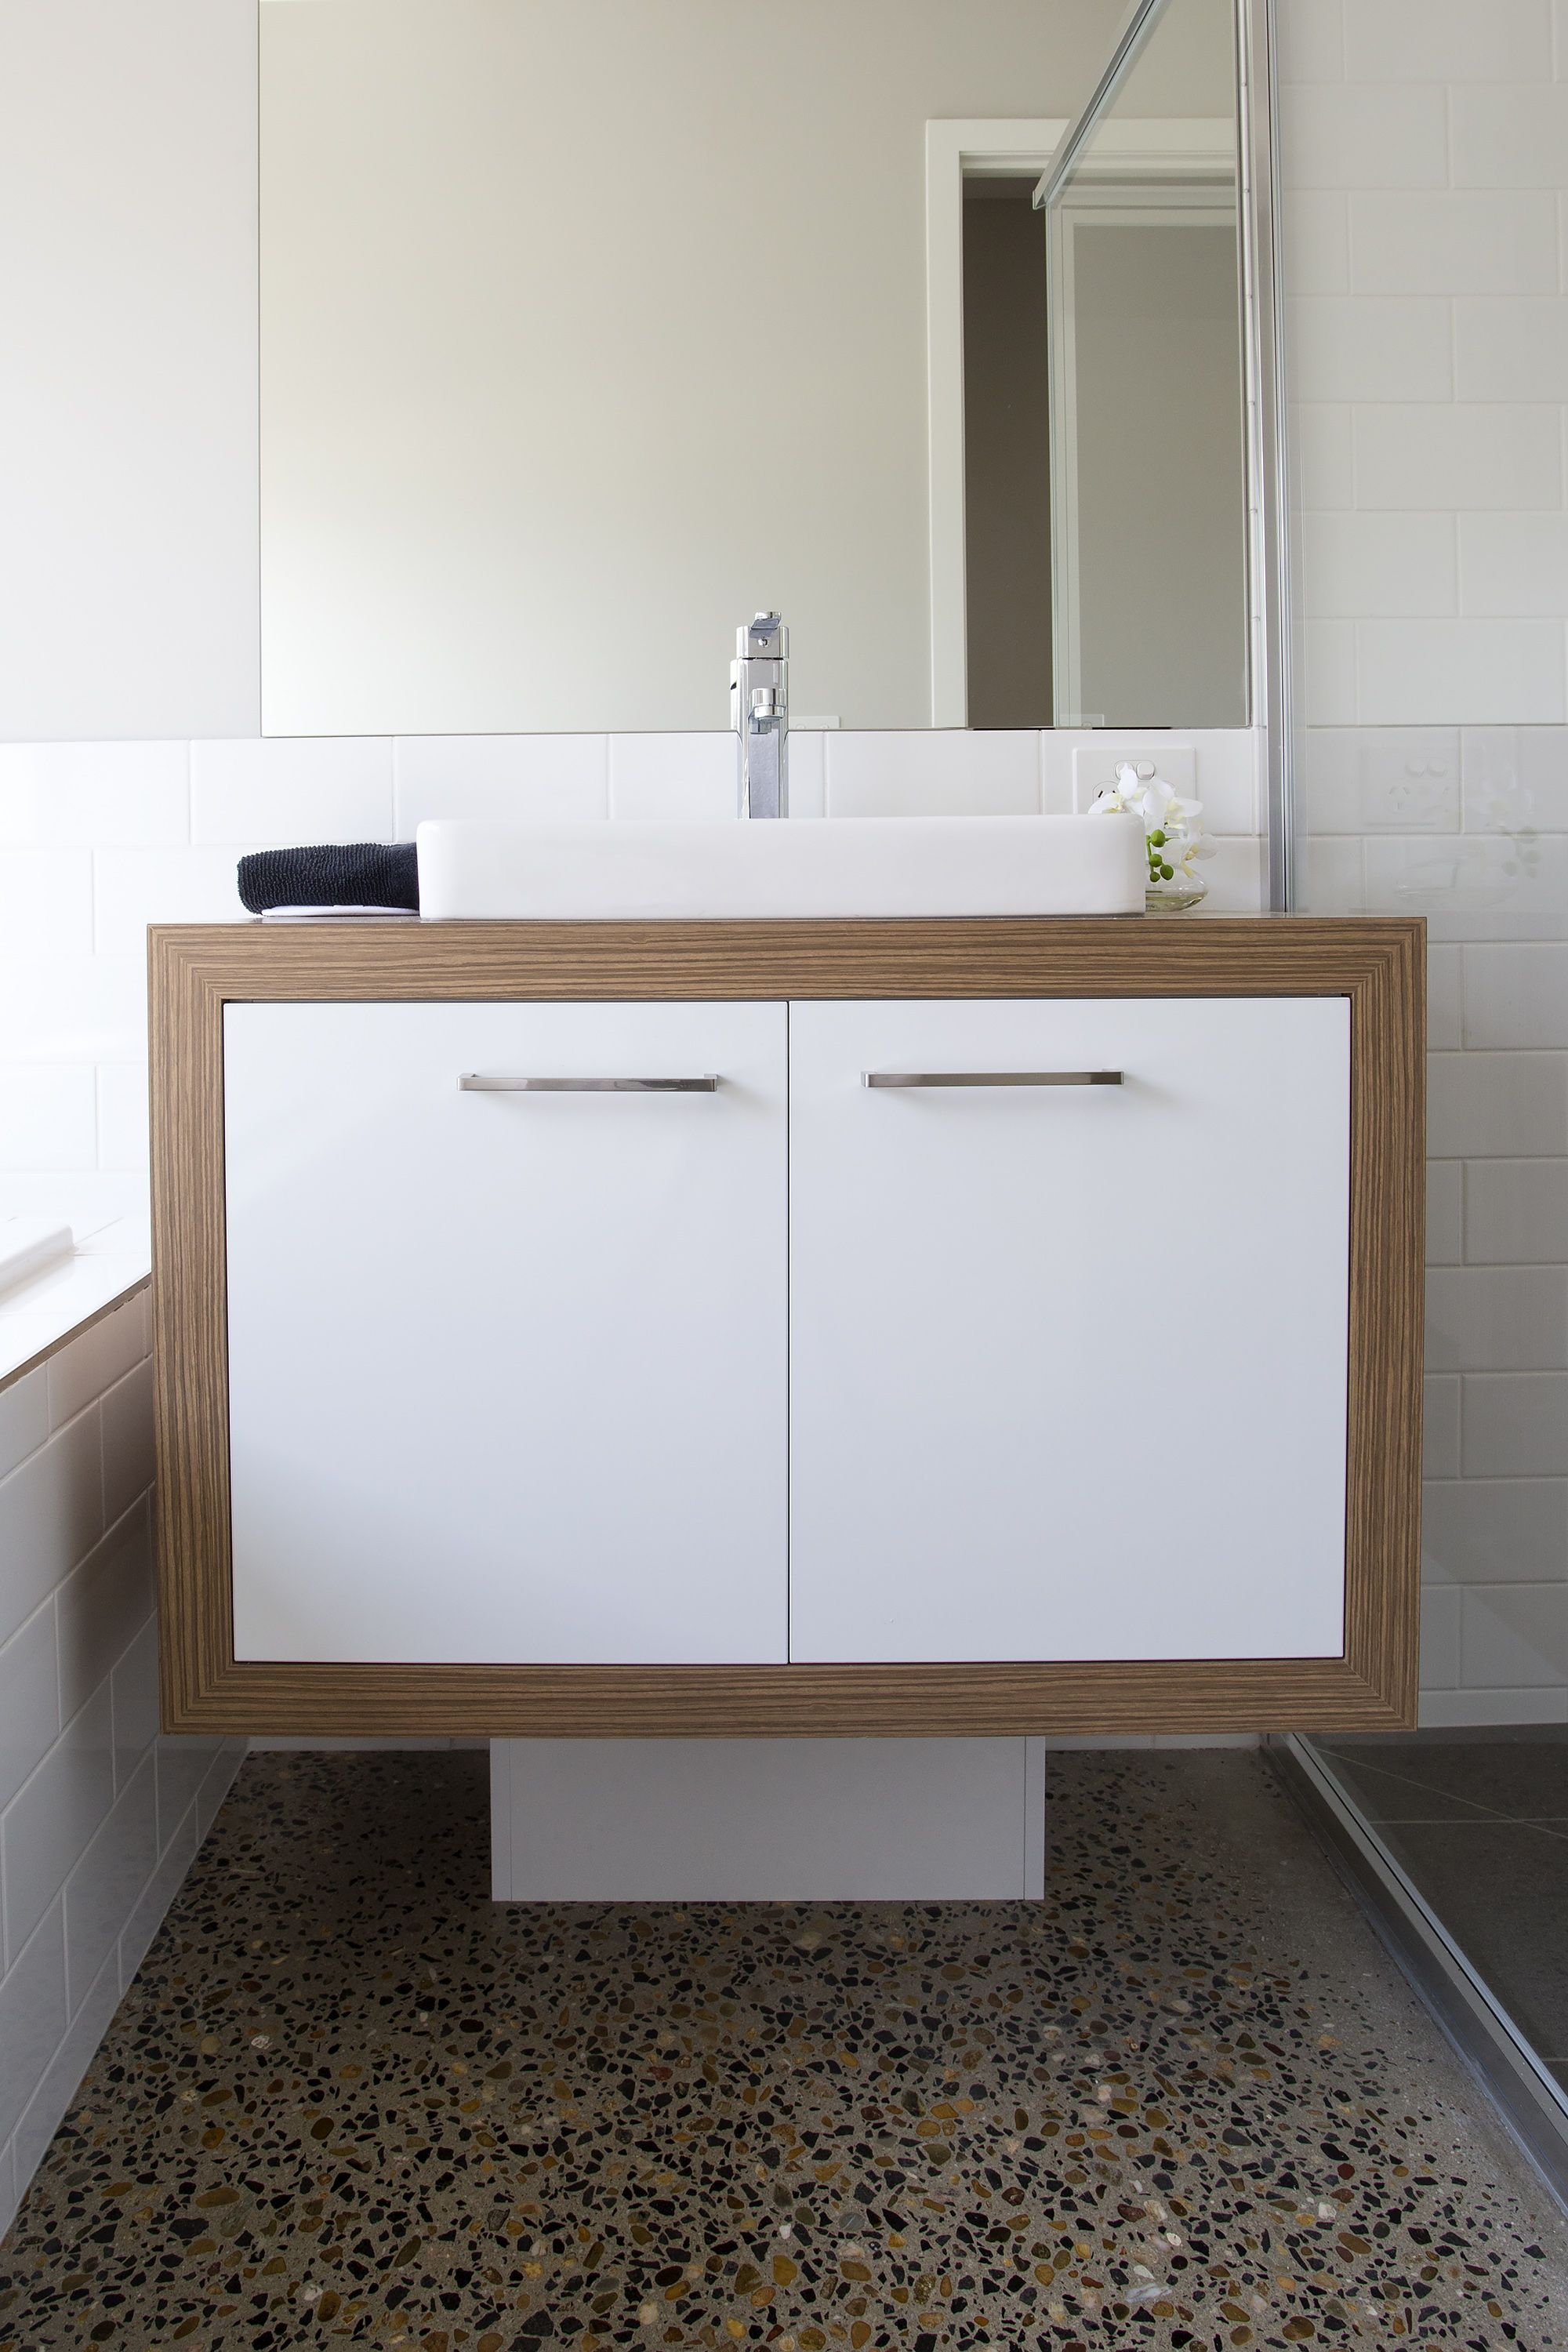 Bathroom Vanity By Bourke S Kitchens Benchtop and Surround